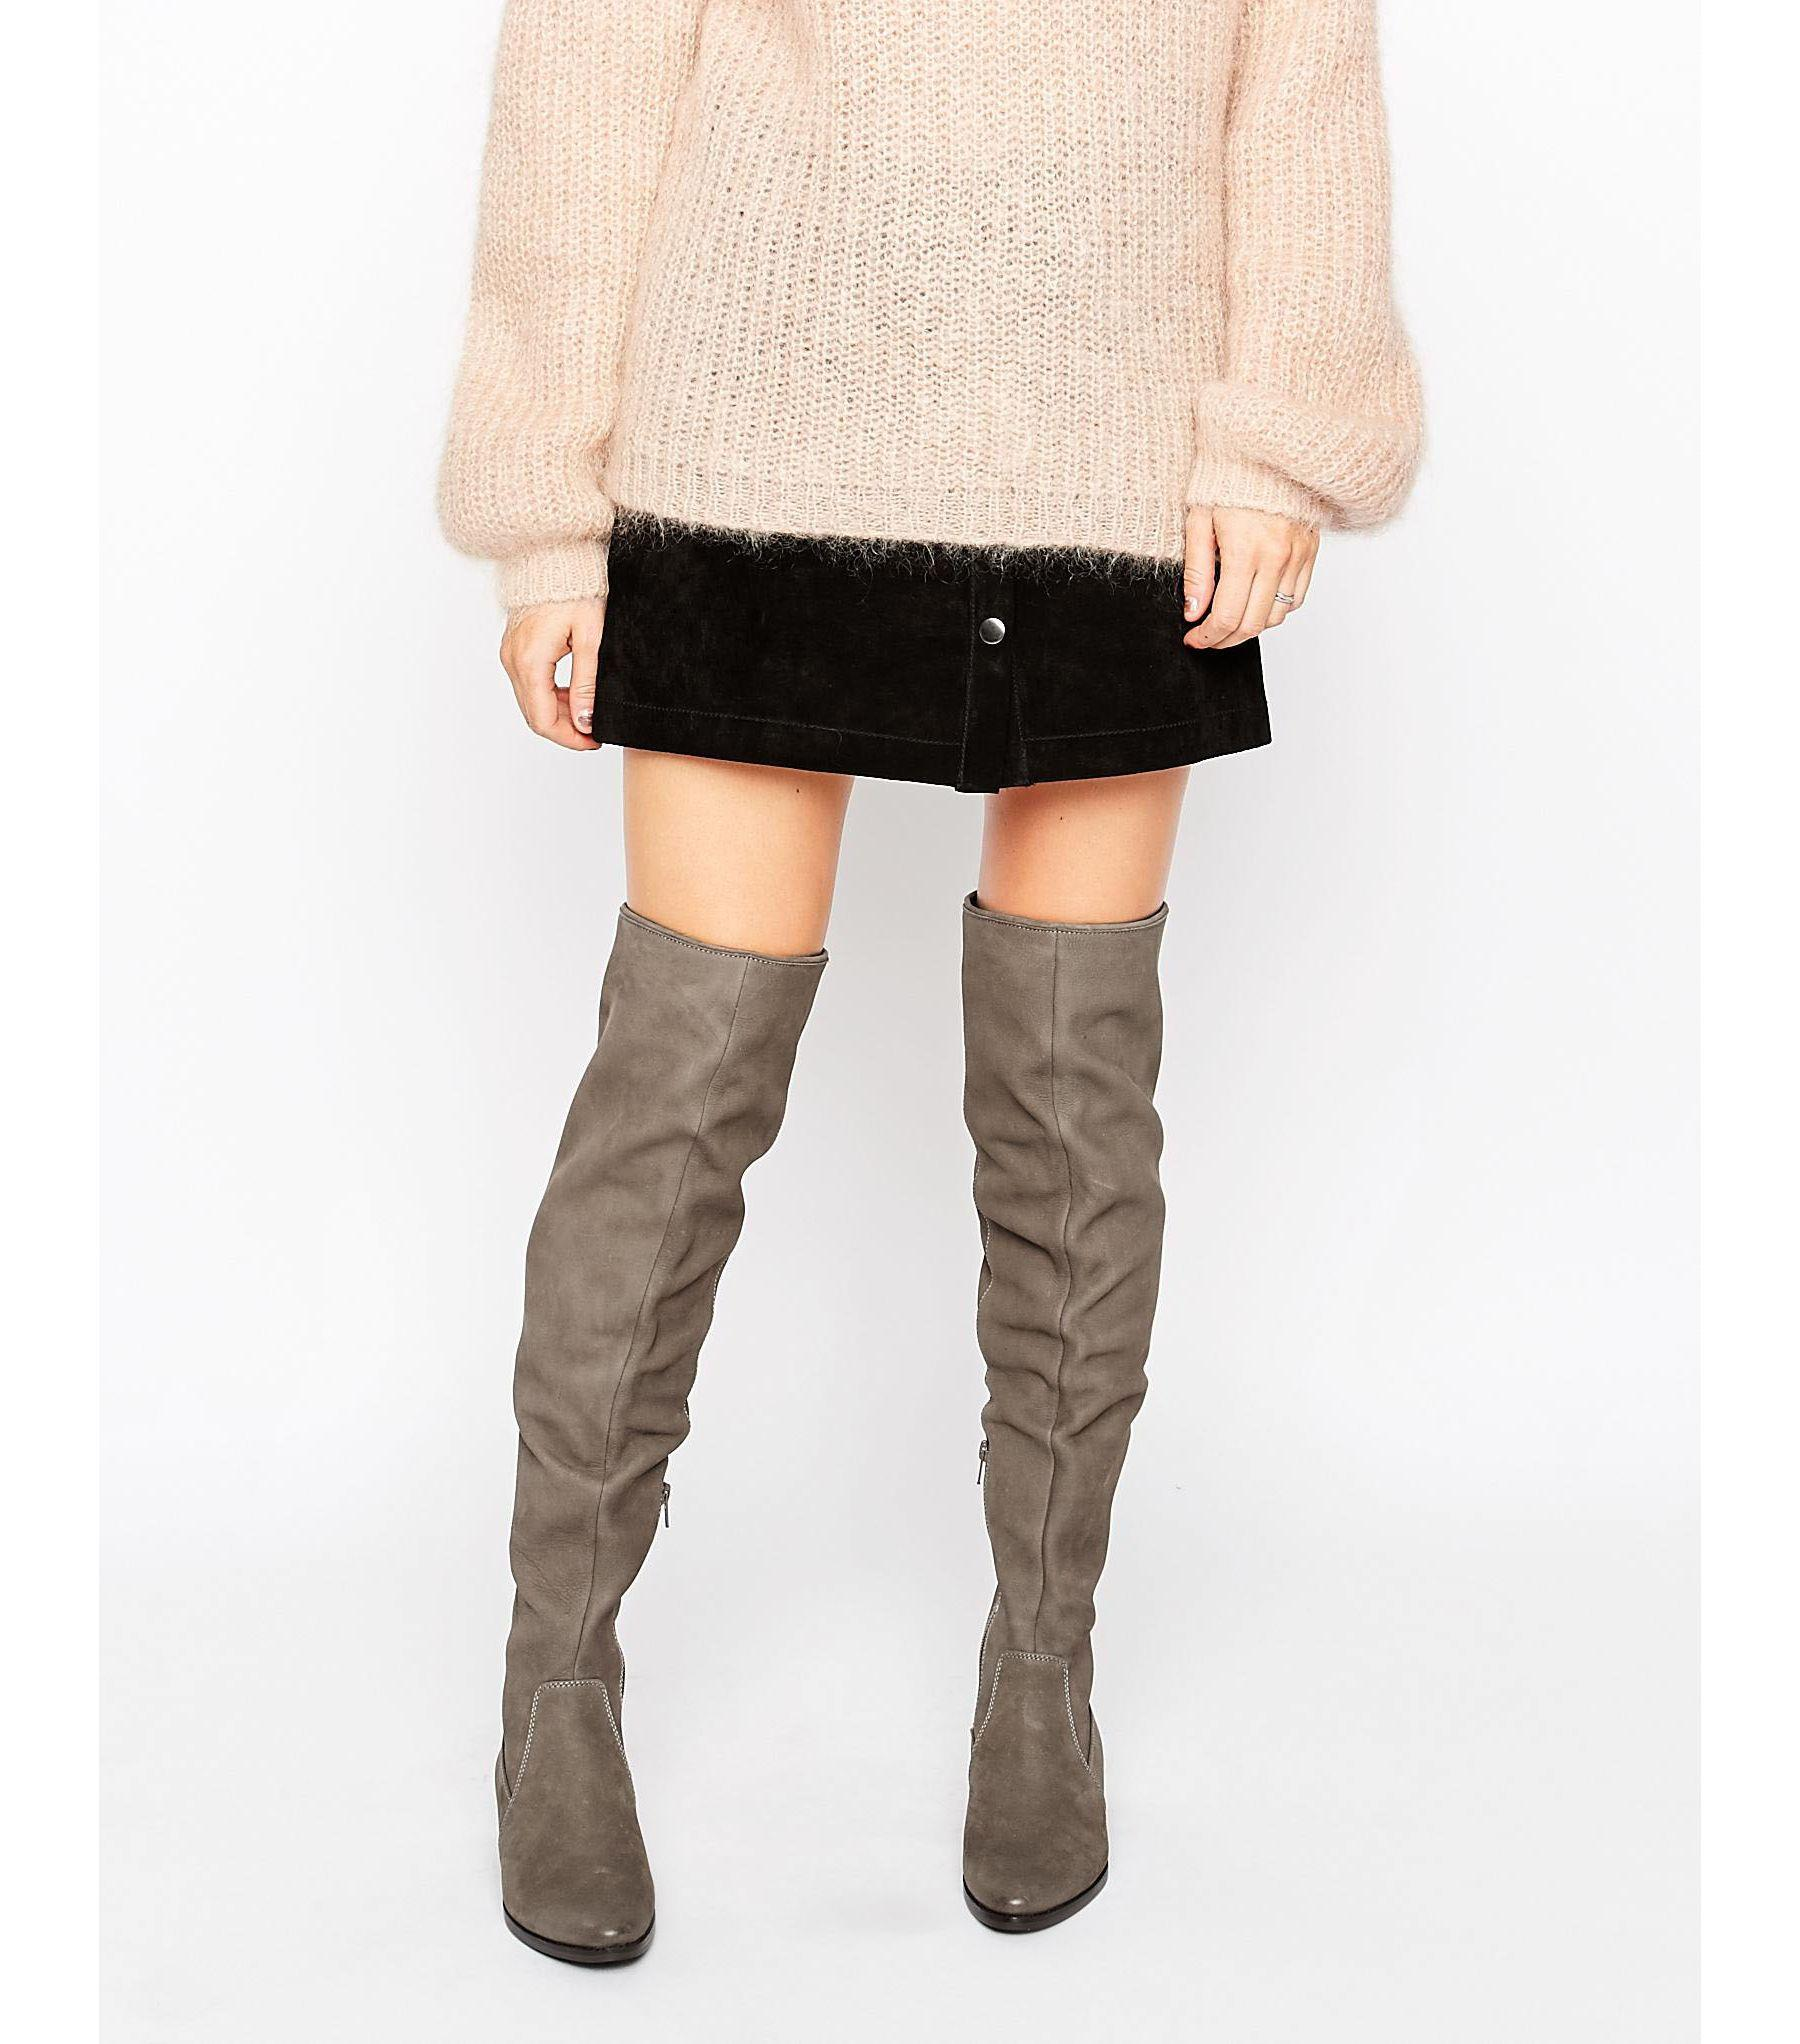 2dae147352a Aldo Chiaverni Leather Flat Over The Knee Boots - Lyst